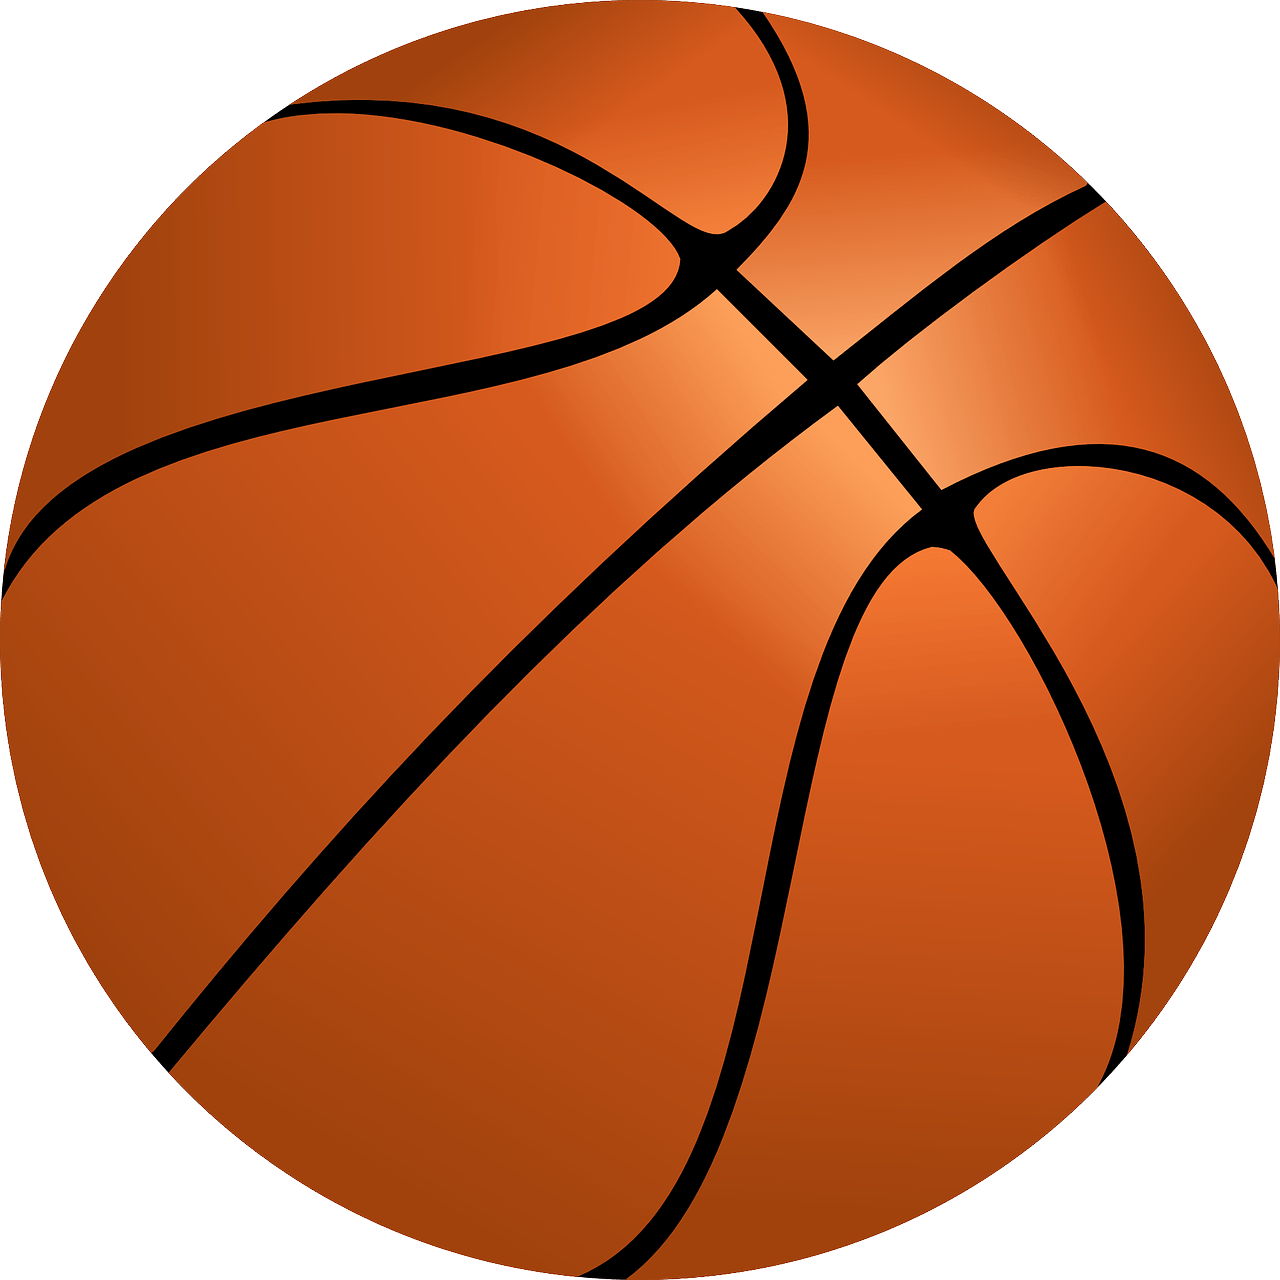 Cartoon picture of a basketball